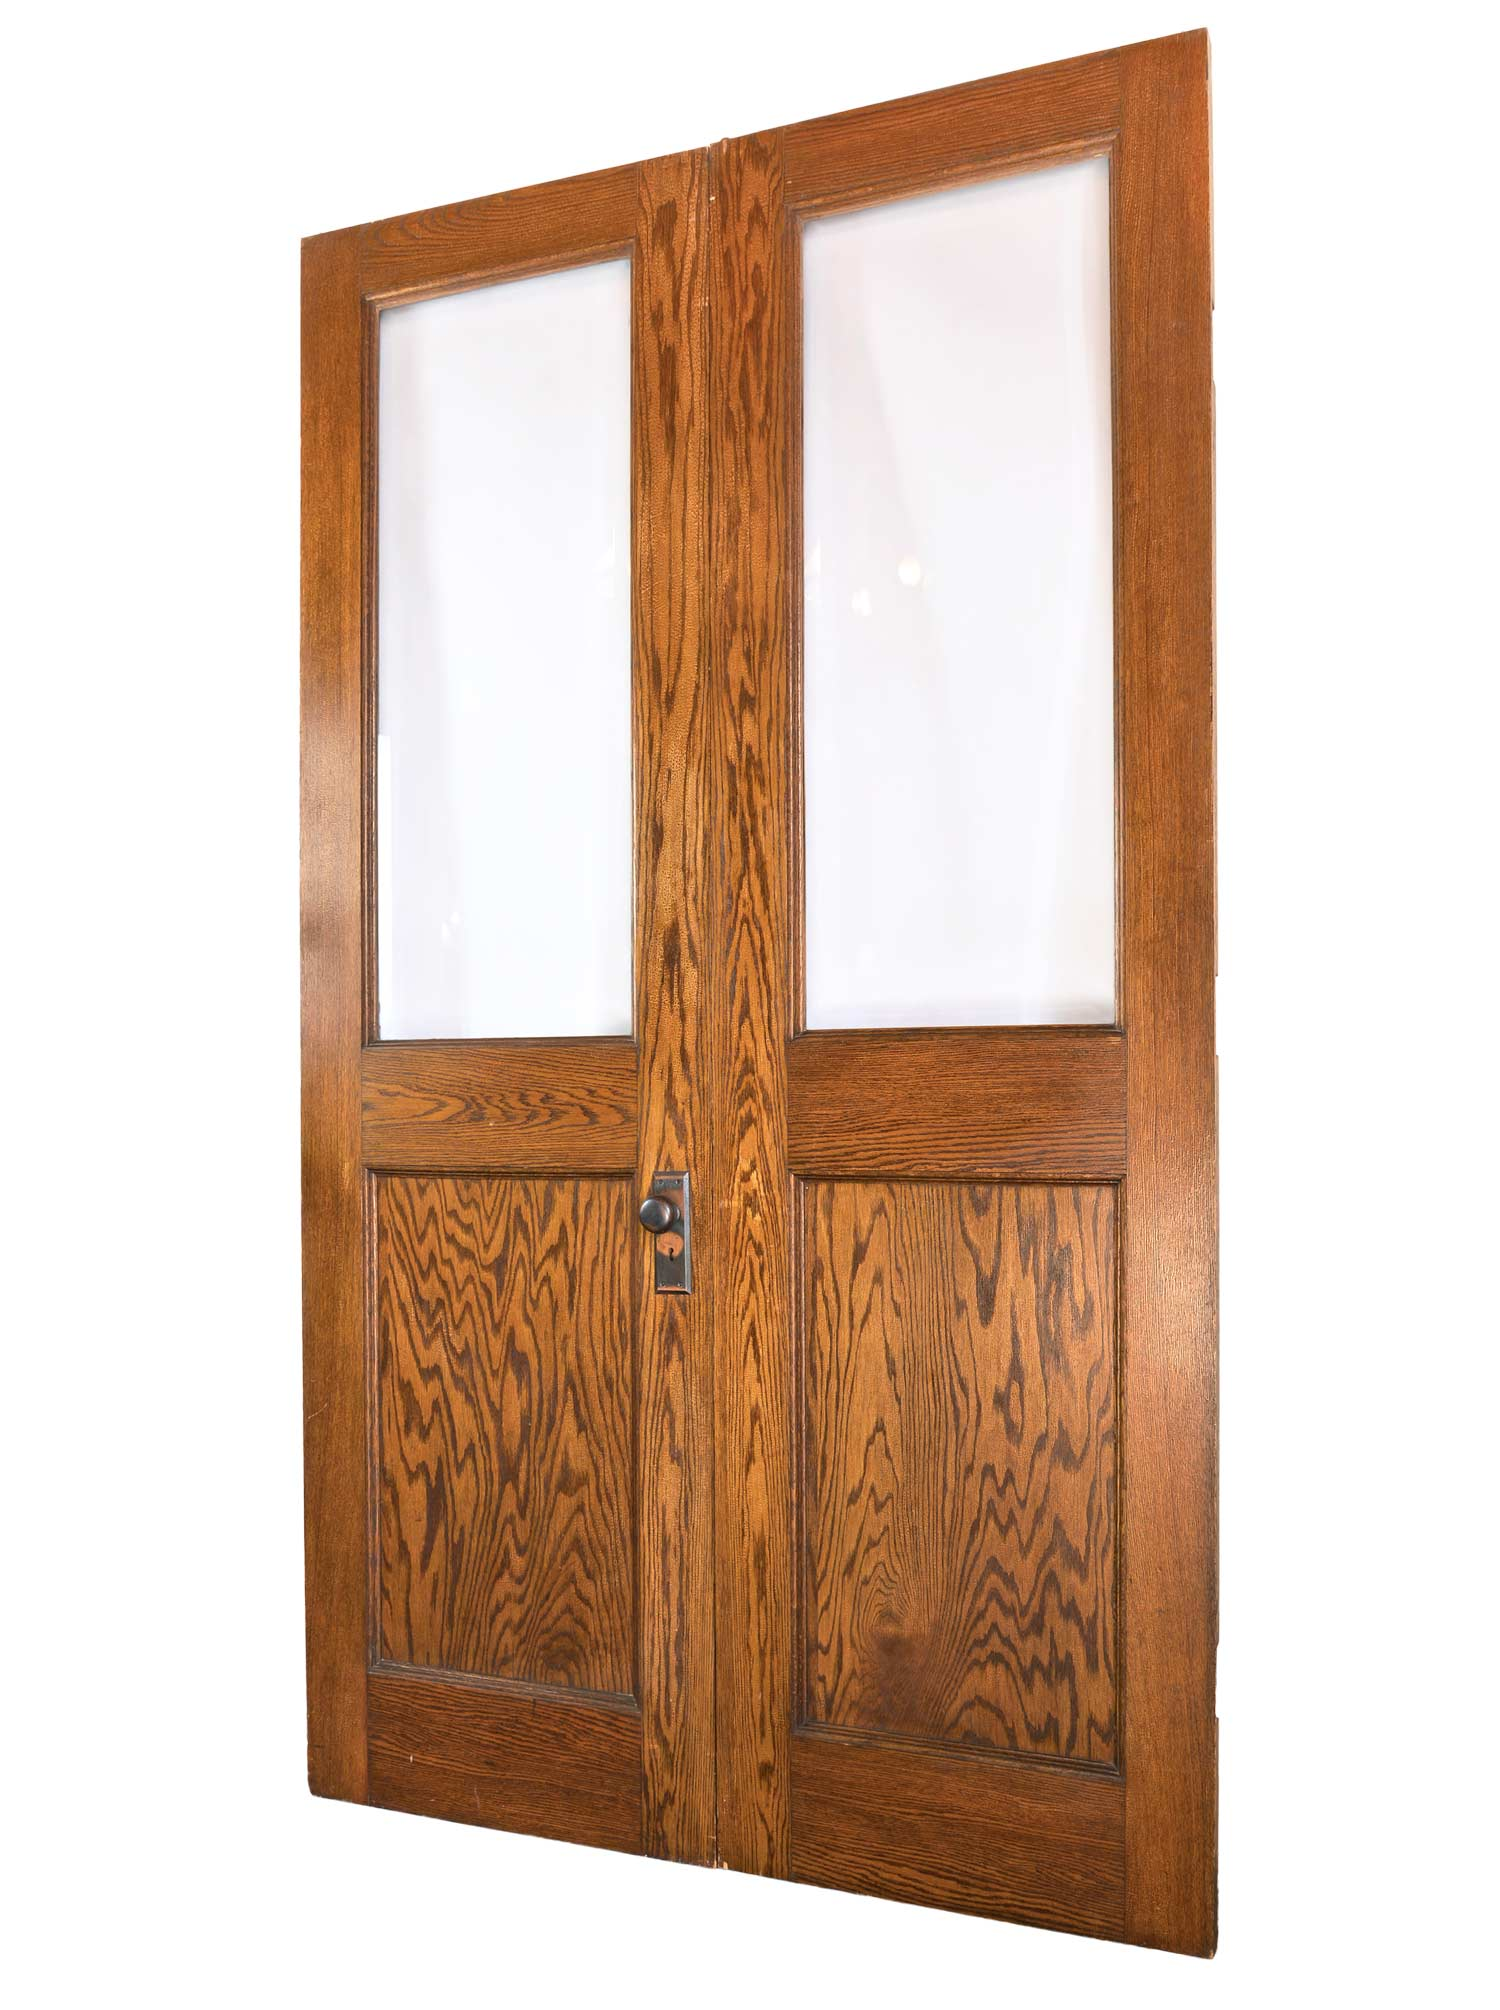 46116-tall-oak-double-doors-with-beveled-glass-back.jpg